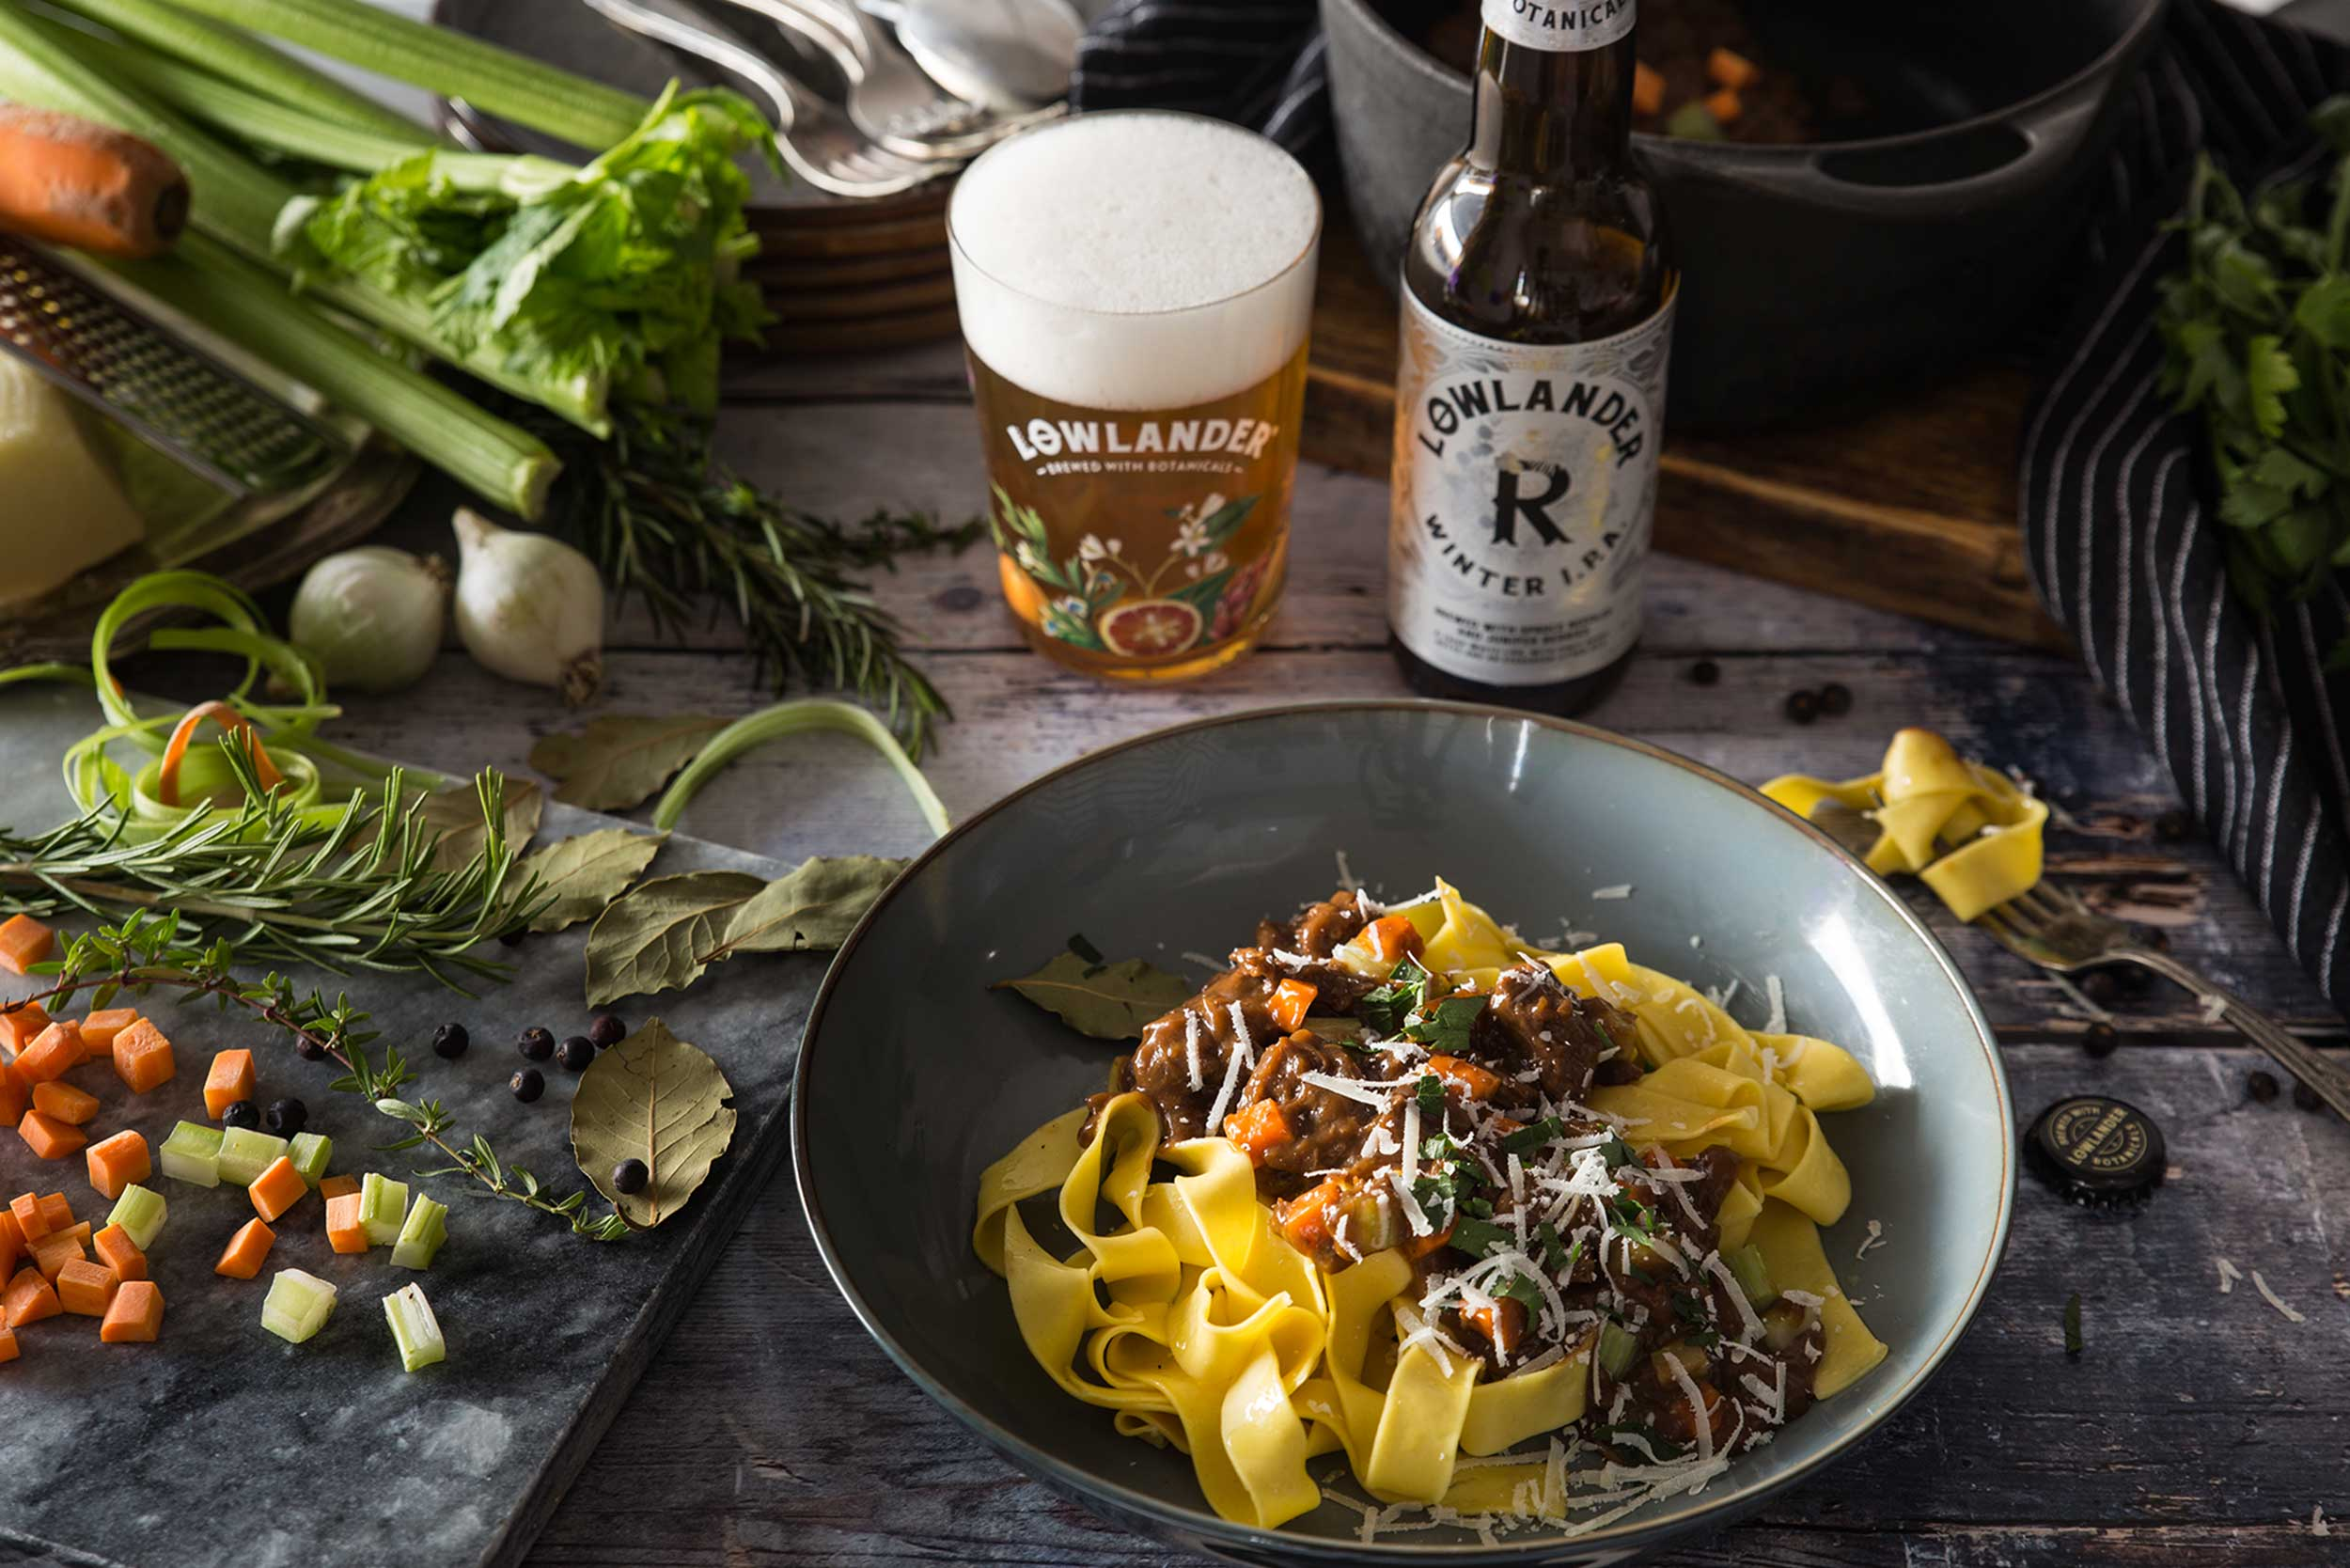 Lowlander Botanical Beers_Recipe_Foodpairing_Winter Ale_ Winterragout Carrot_landscape